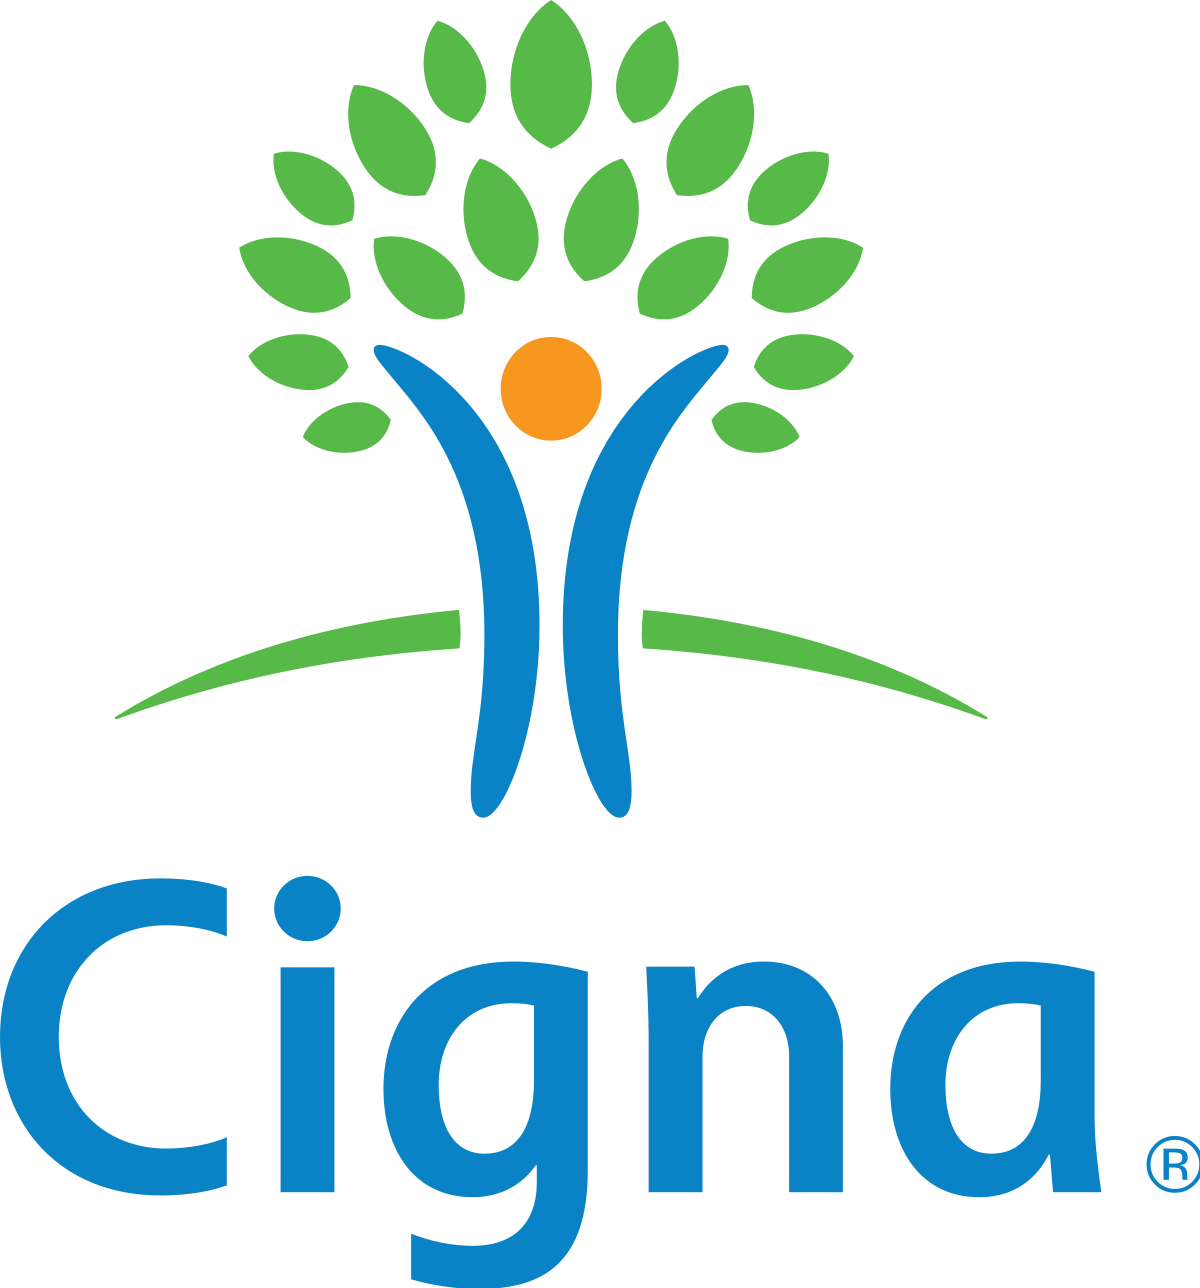 cigna intensive outpatient drug and alcohol addiction help near me